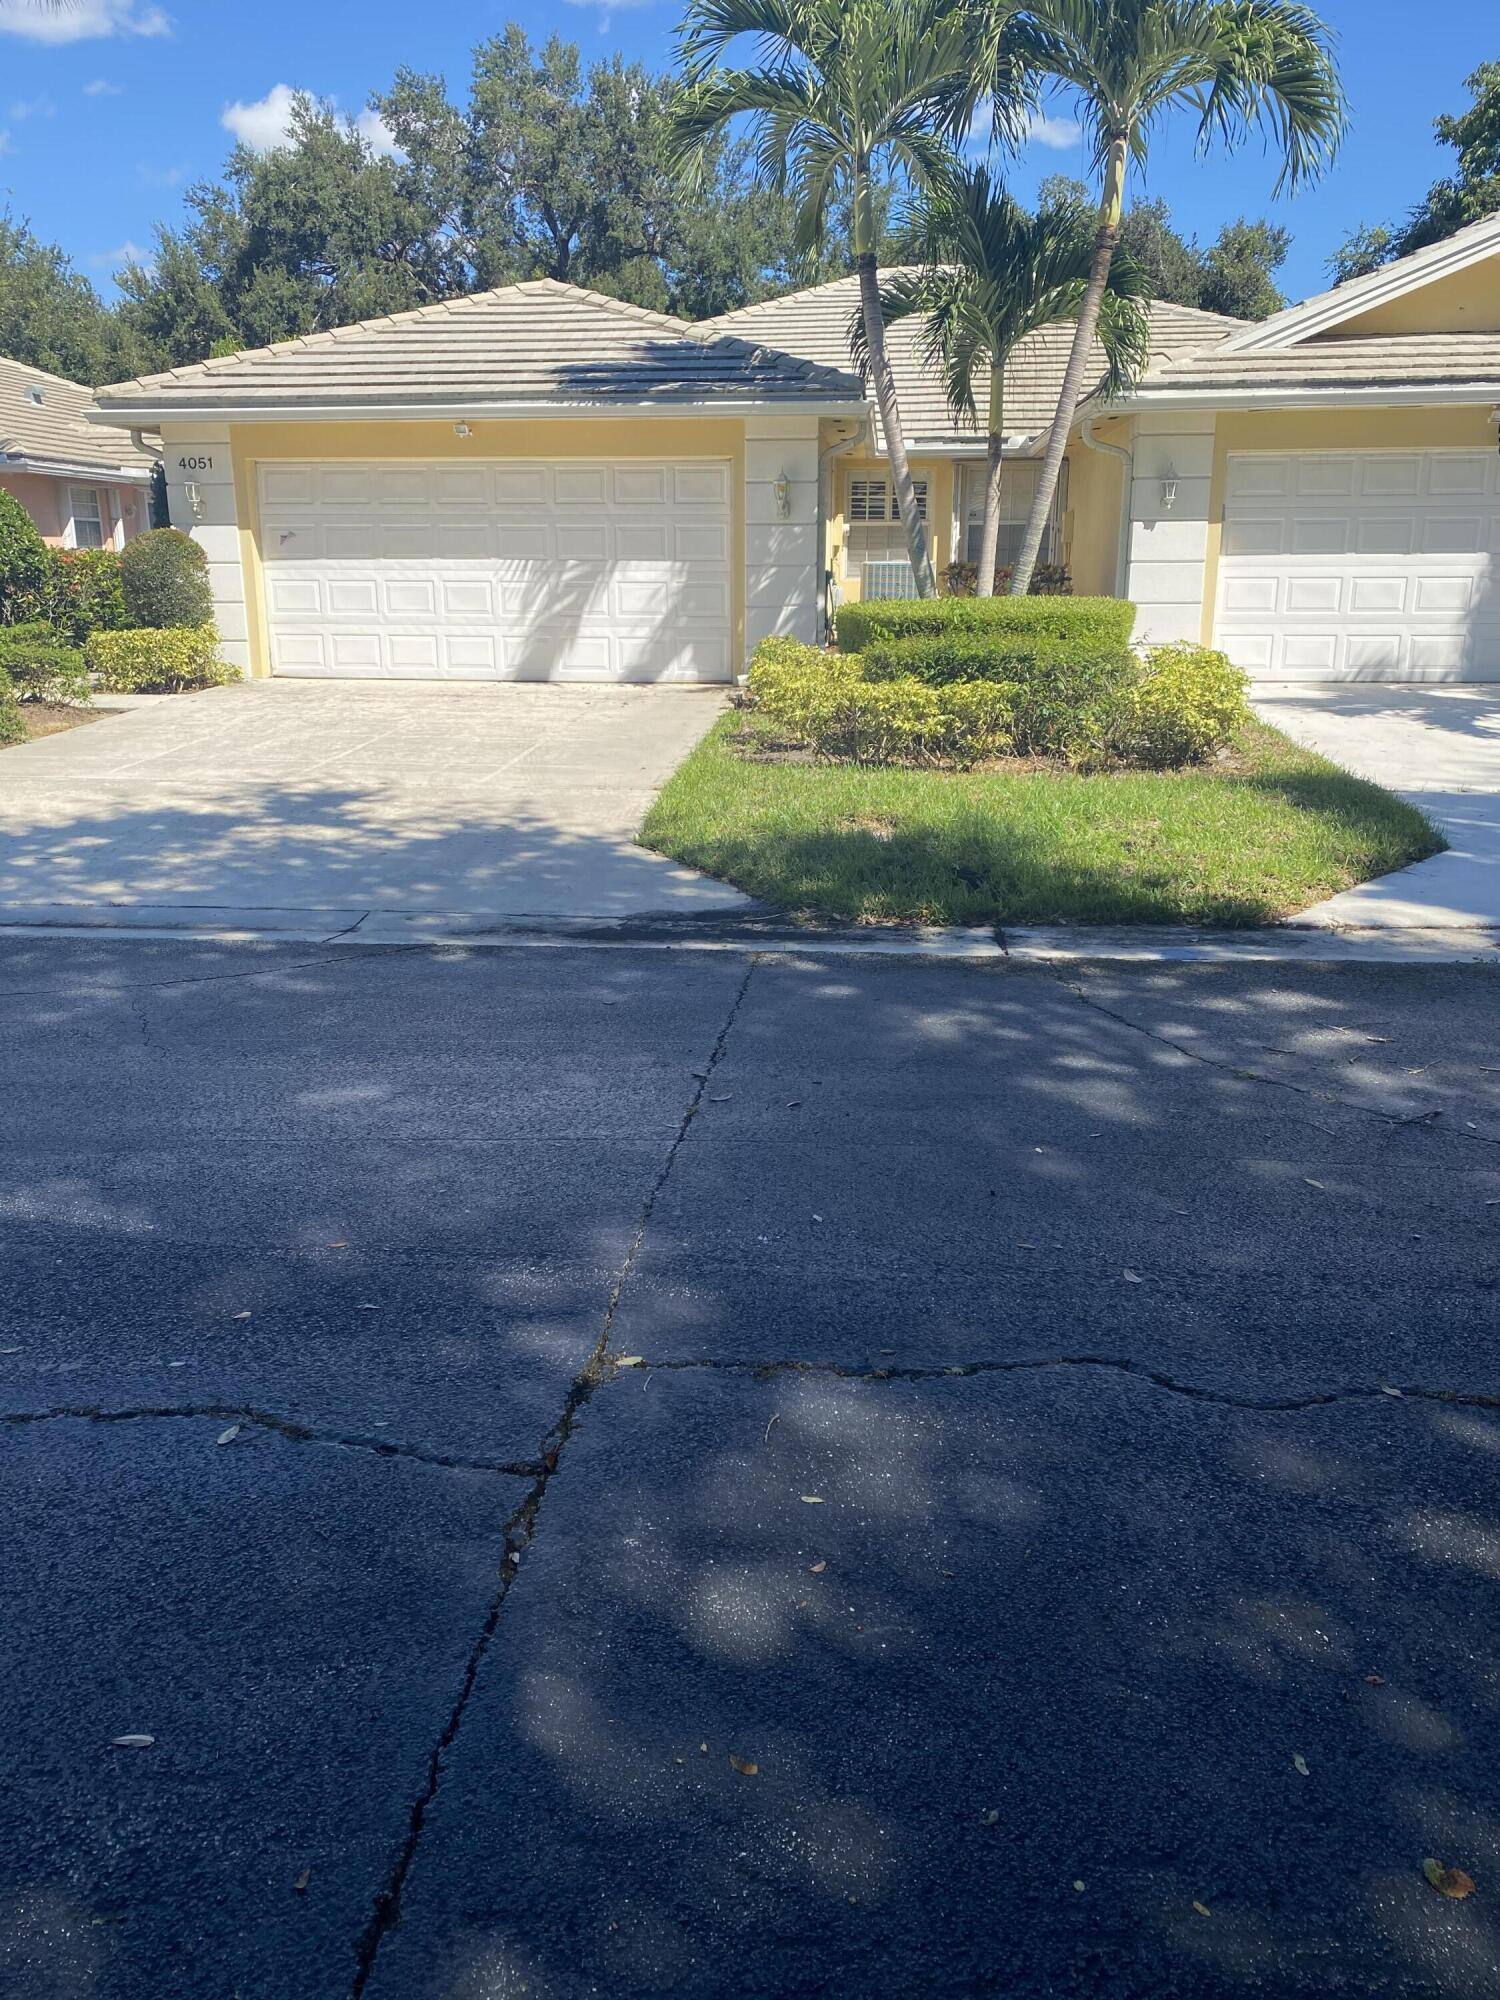 4051  Grove Point Road  For Sale 10747990, FL